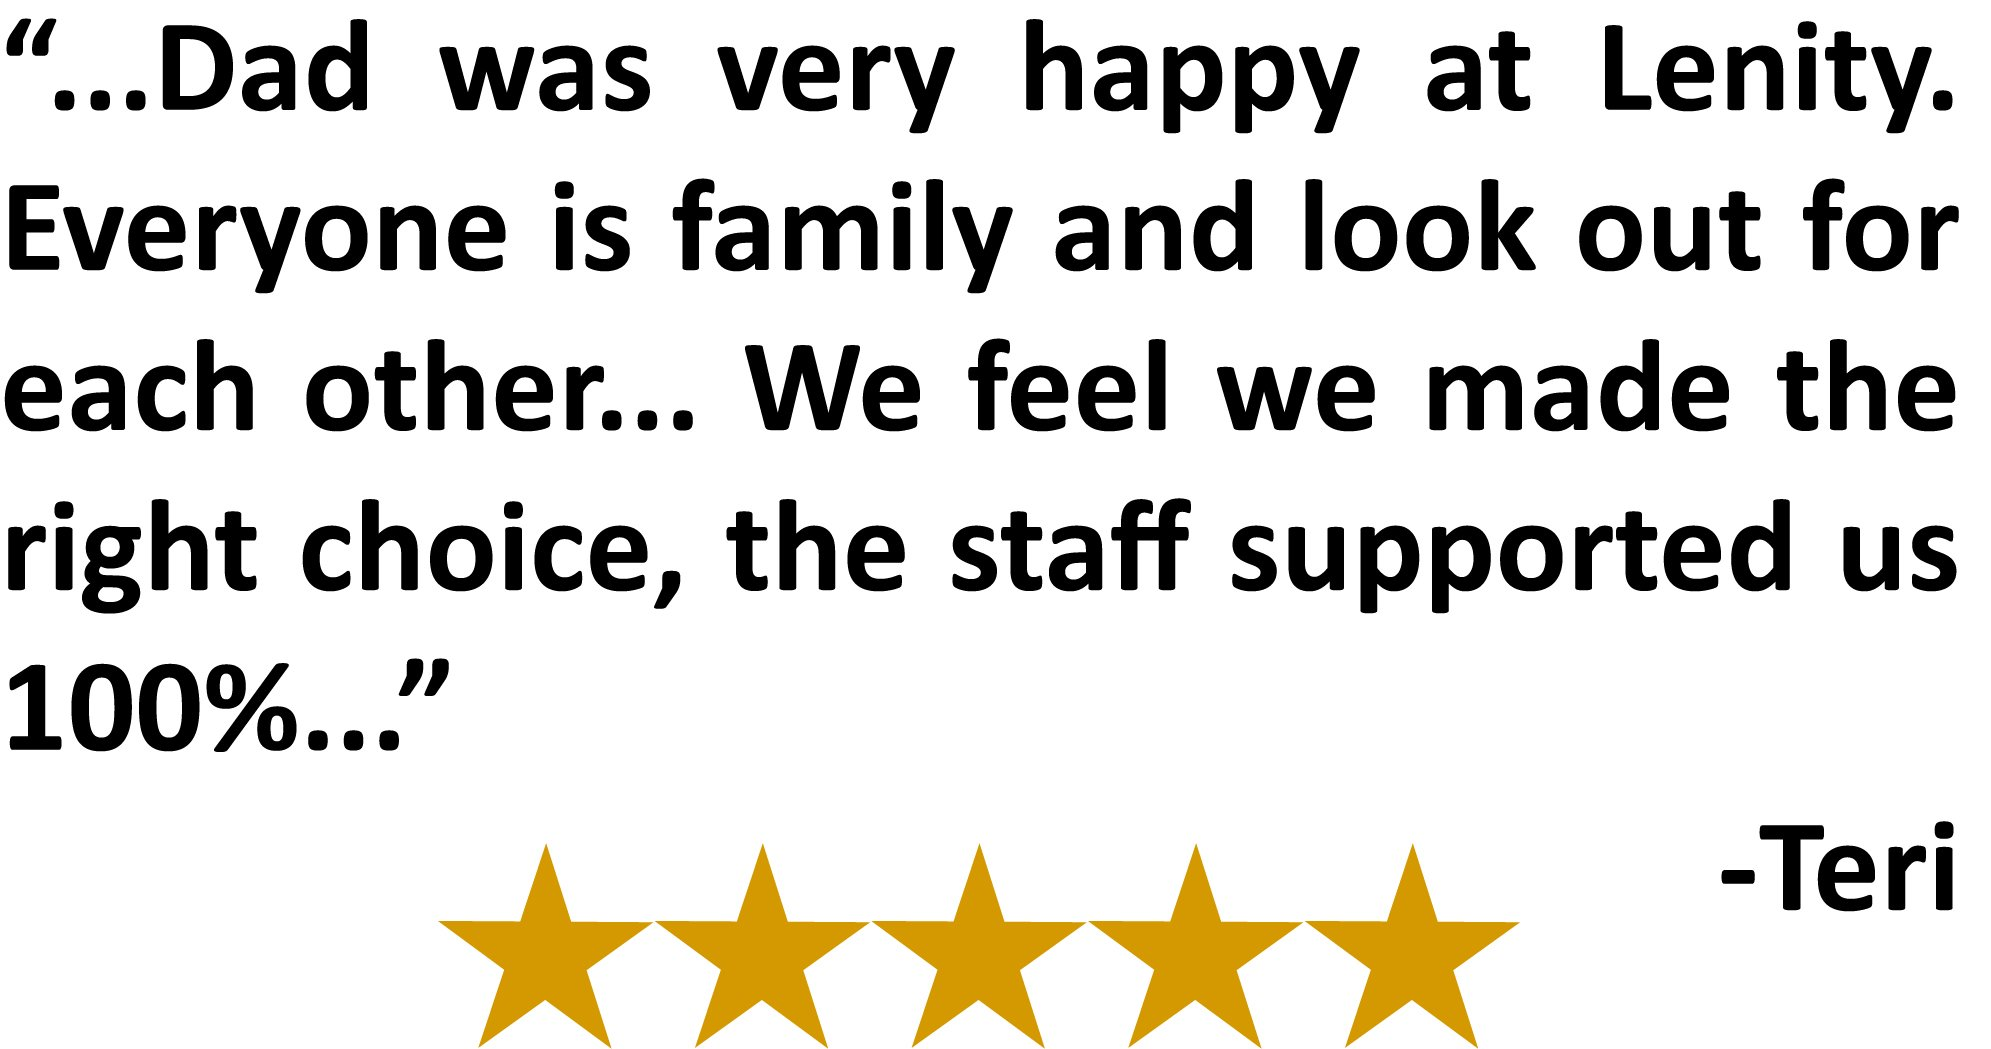 """...Dad was very happy at Lenity. Everyone is family and look out for each other... We feel we made the right choice, the staff supported us 100%..."" -Teri"